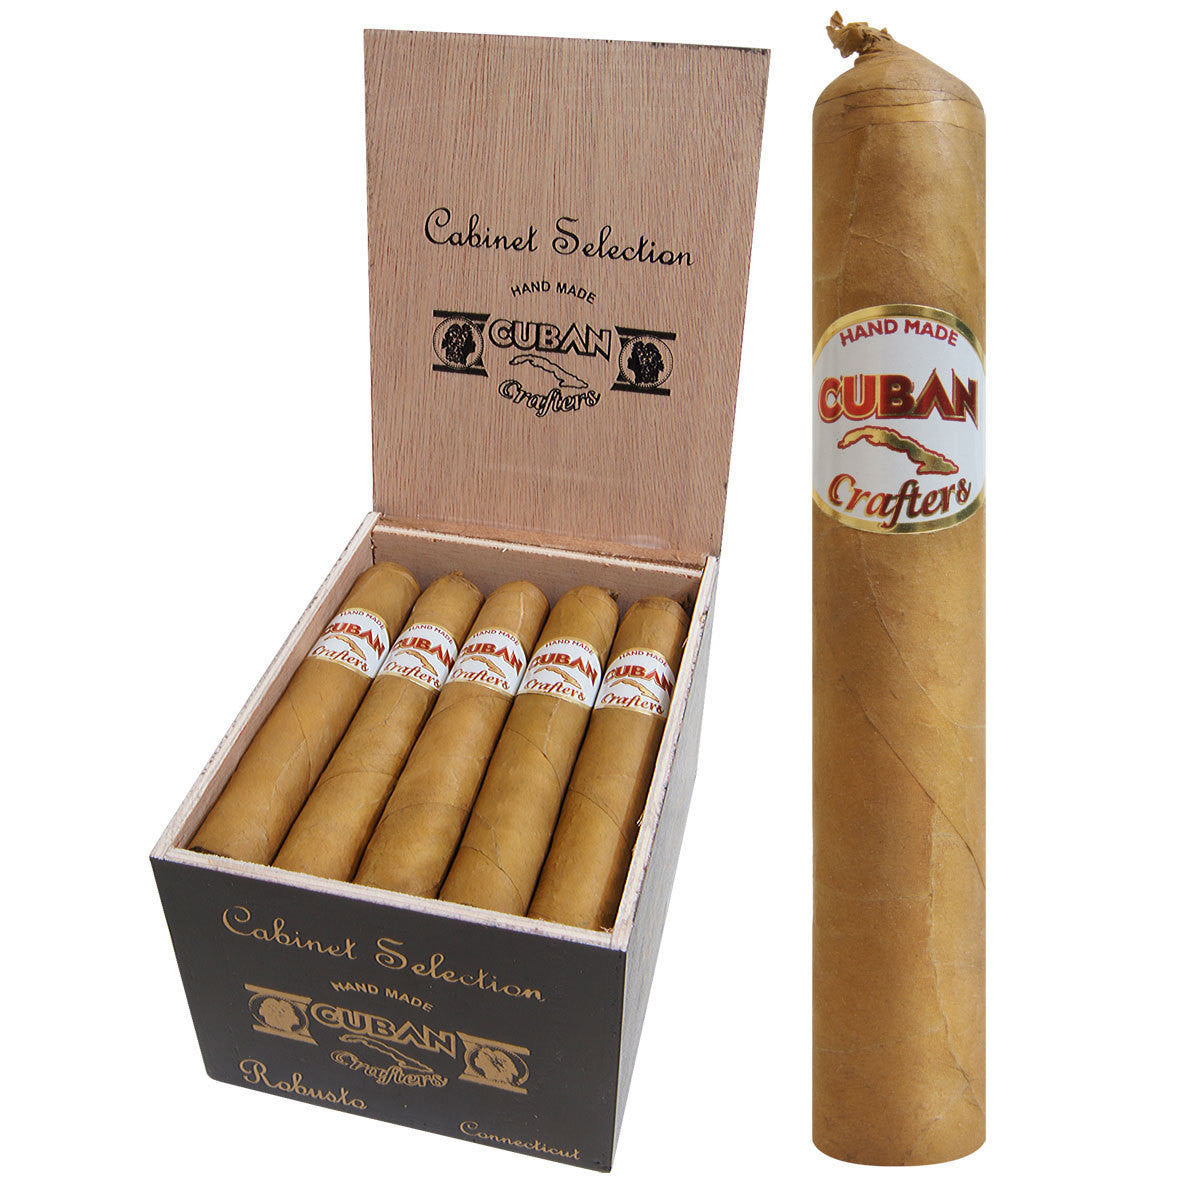 Cuban Crafters Cabinet Selection Cigars Connecticut Box of 20 ...